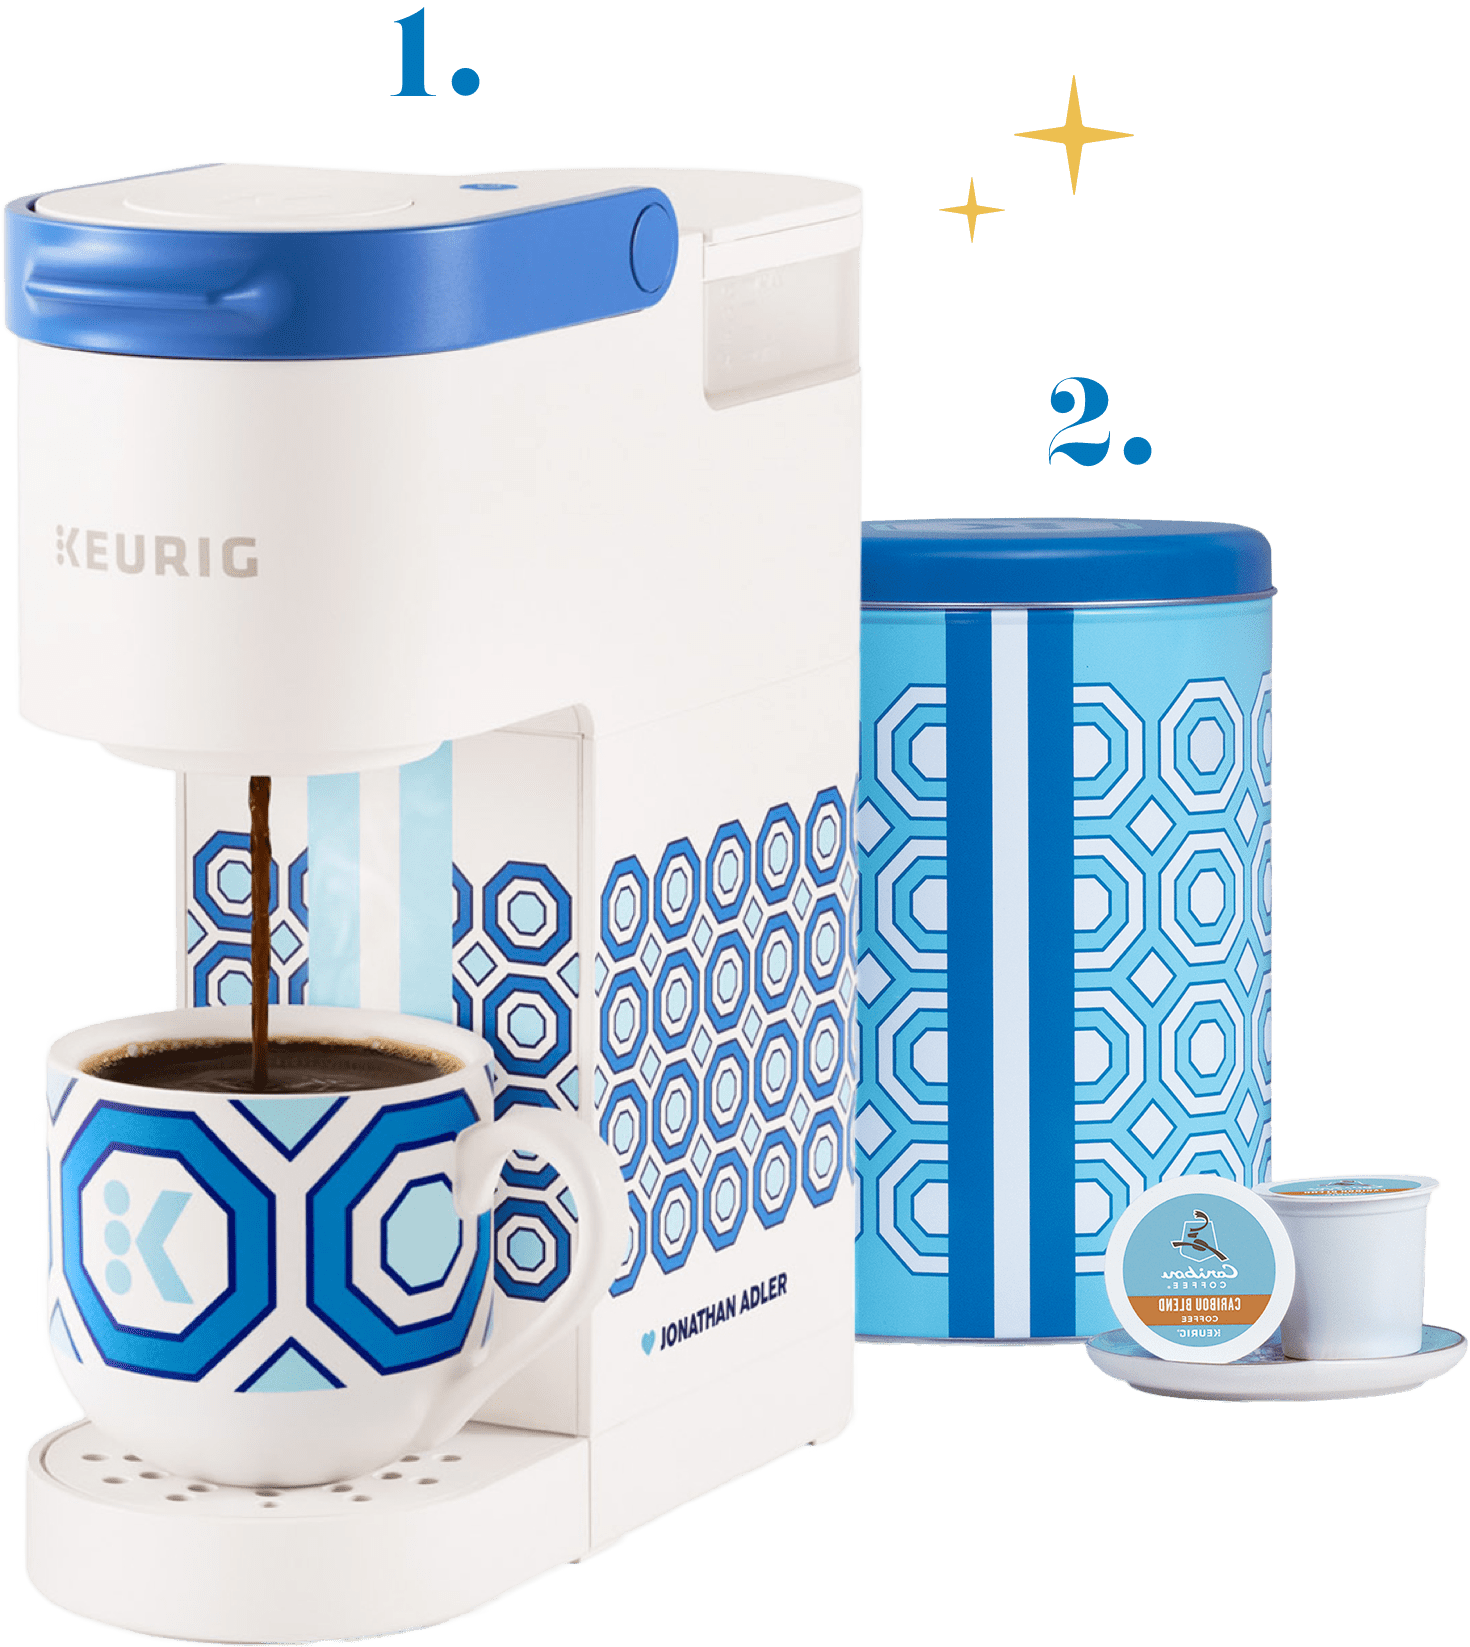 Jonathan Adler ♥︎ Keurig K-Mini® Brewer and Canister